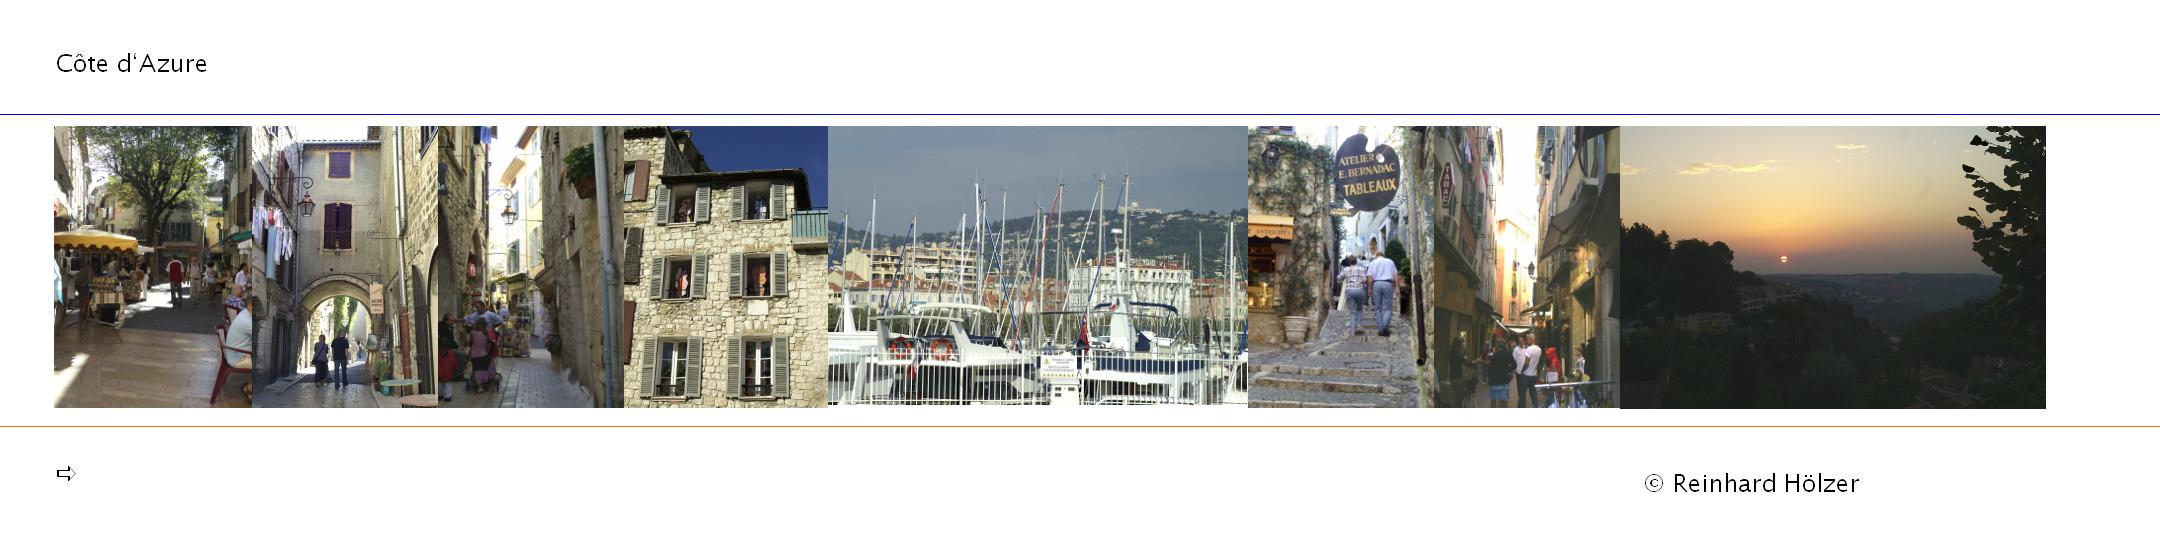 New_Design_09062011_cotedazur